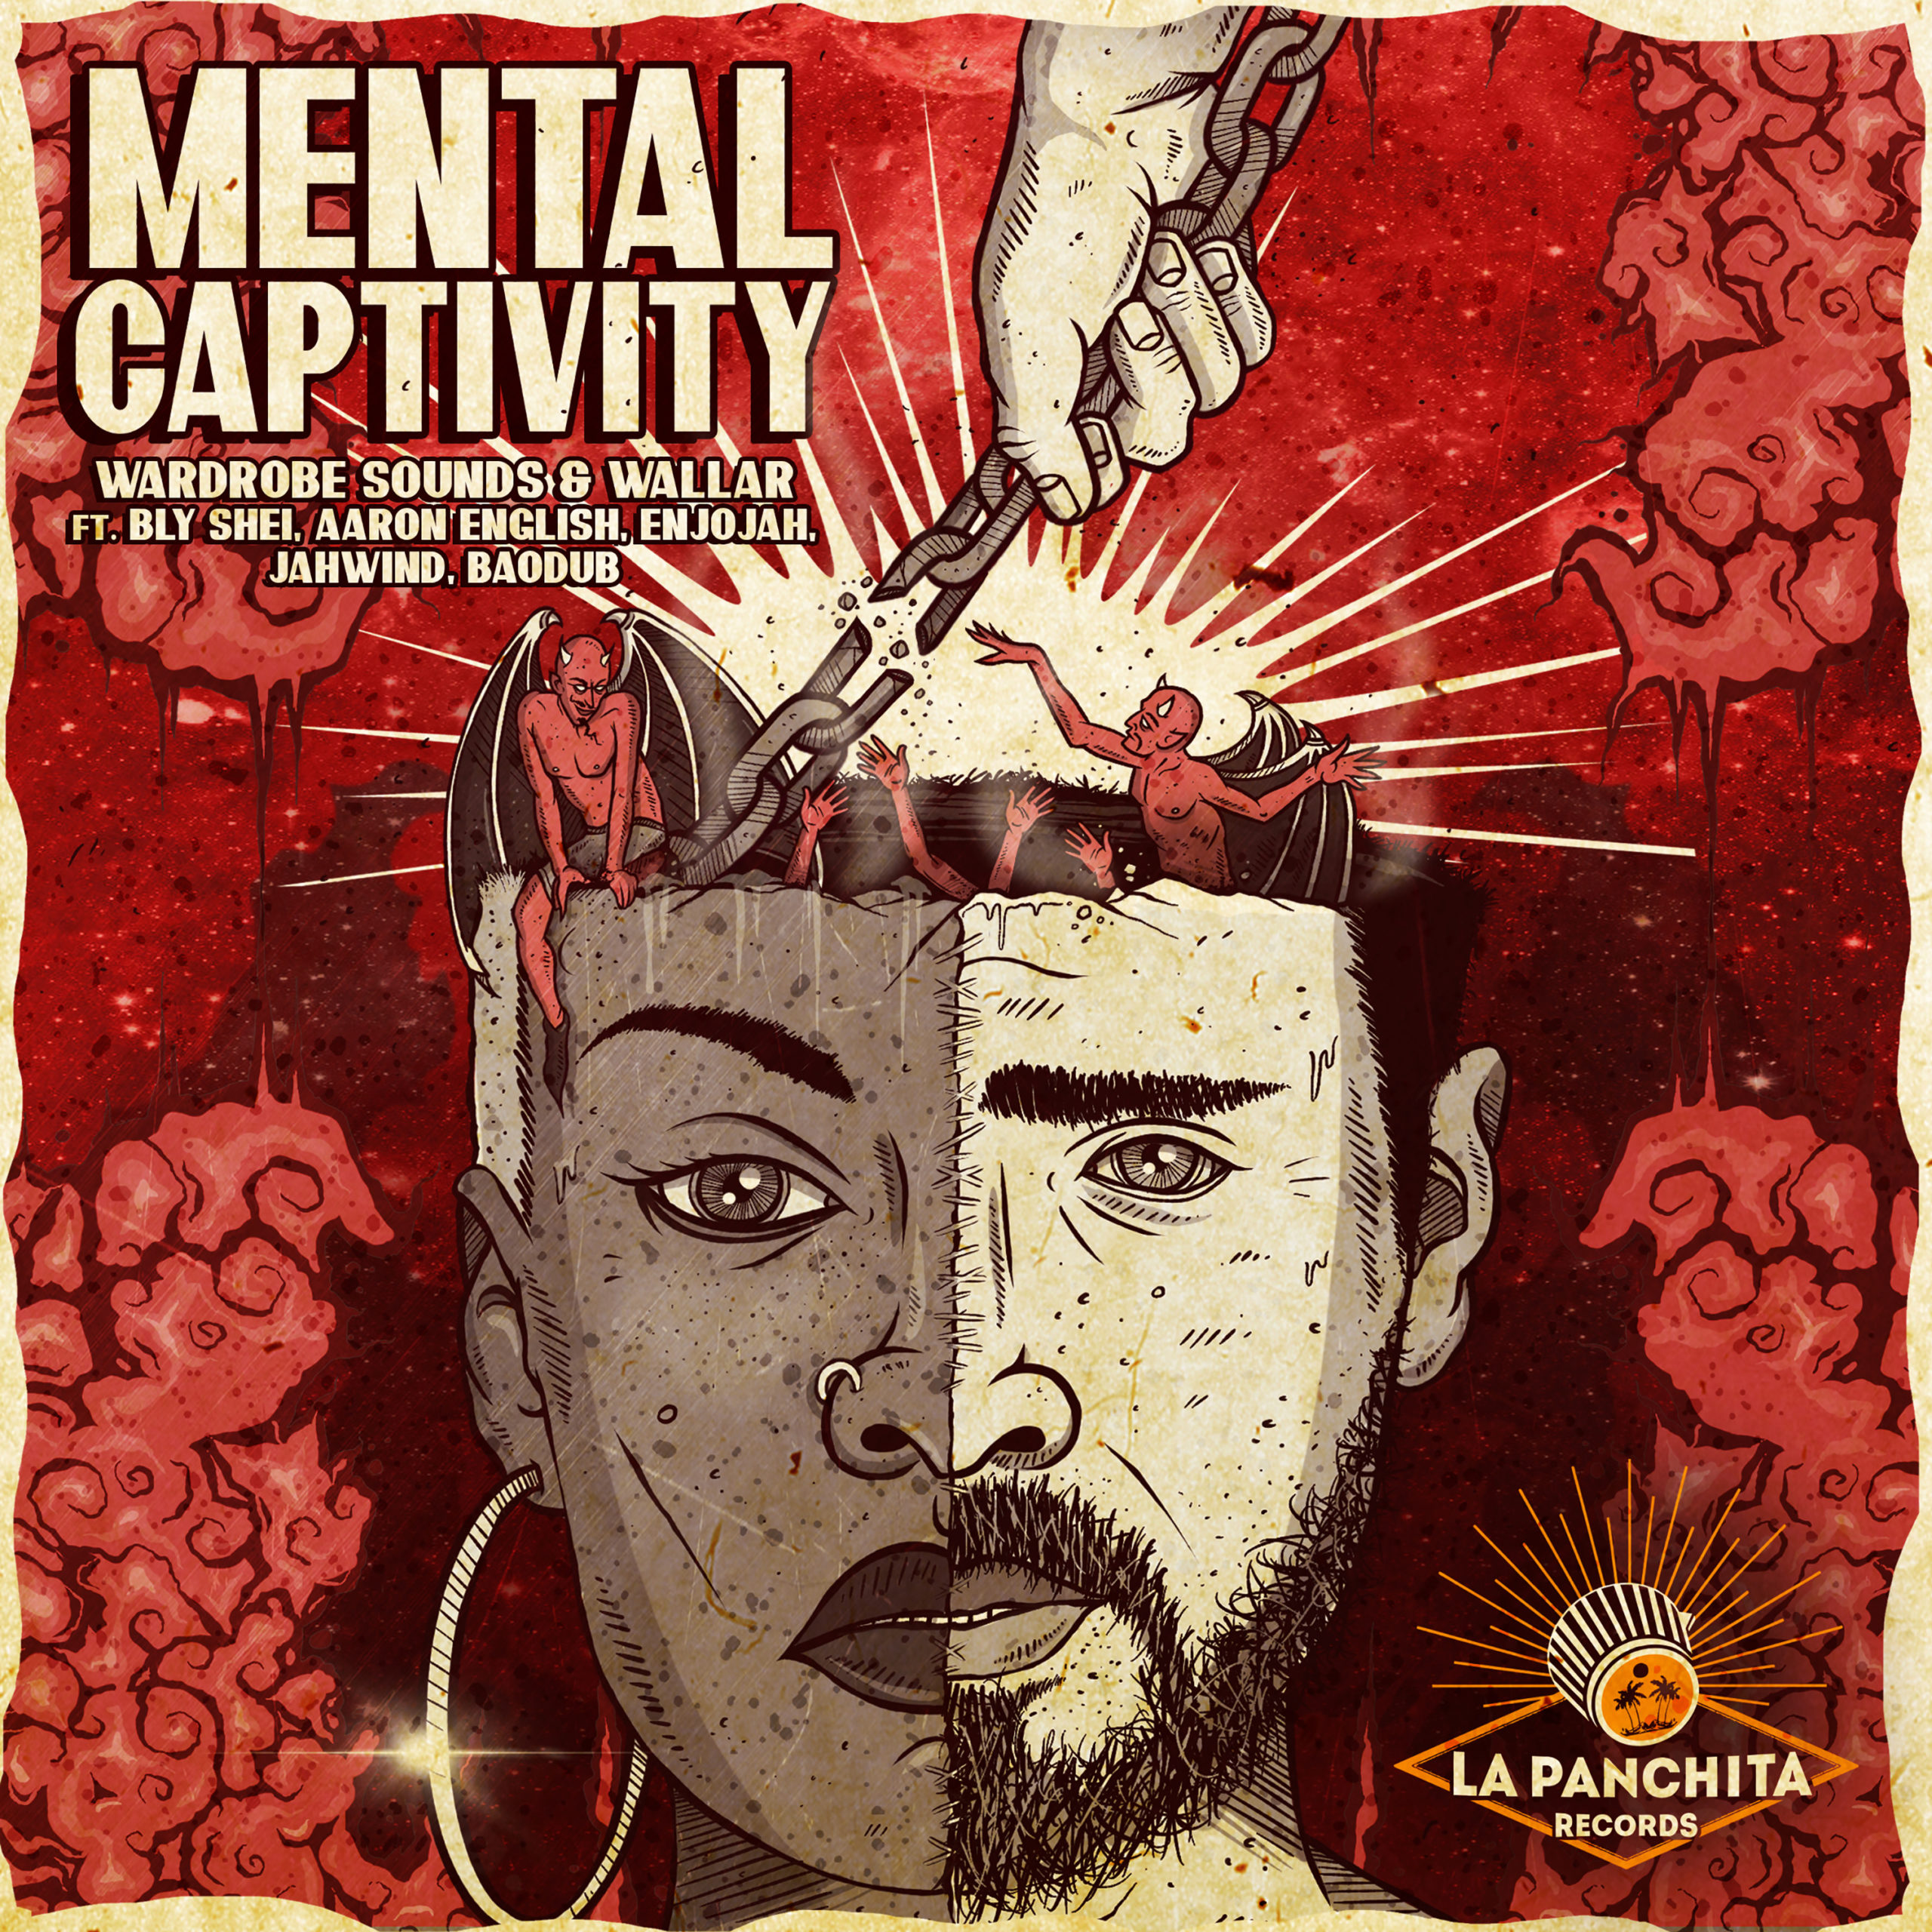 Mental Captivity